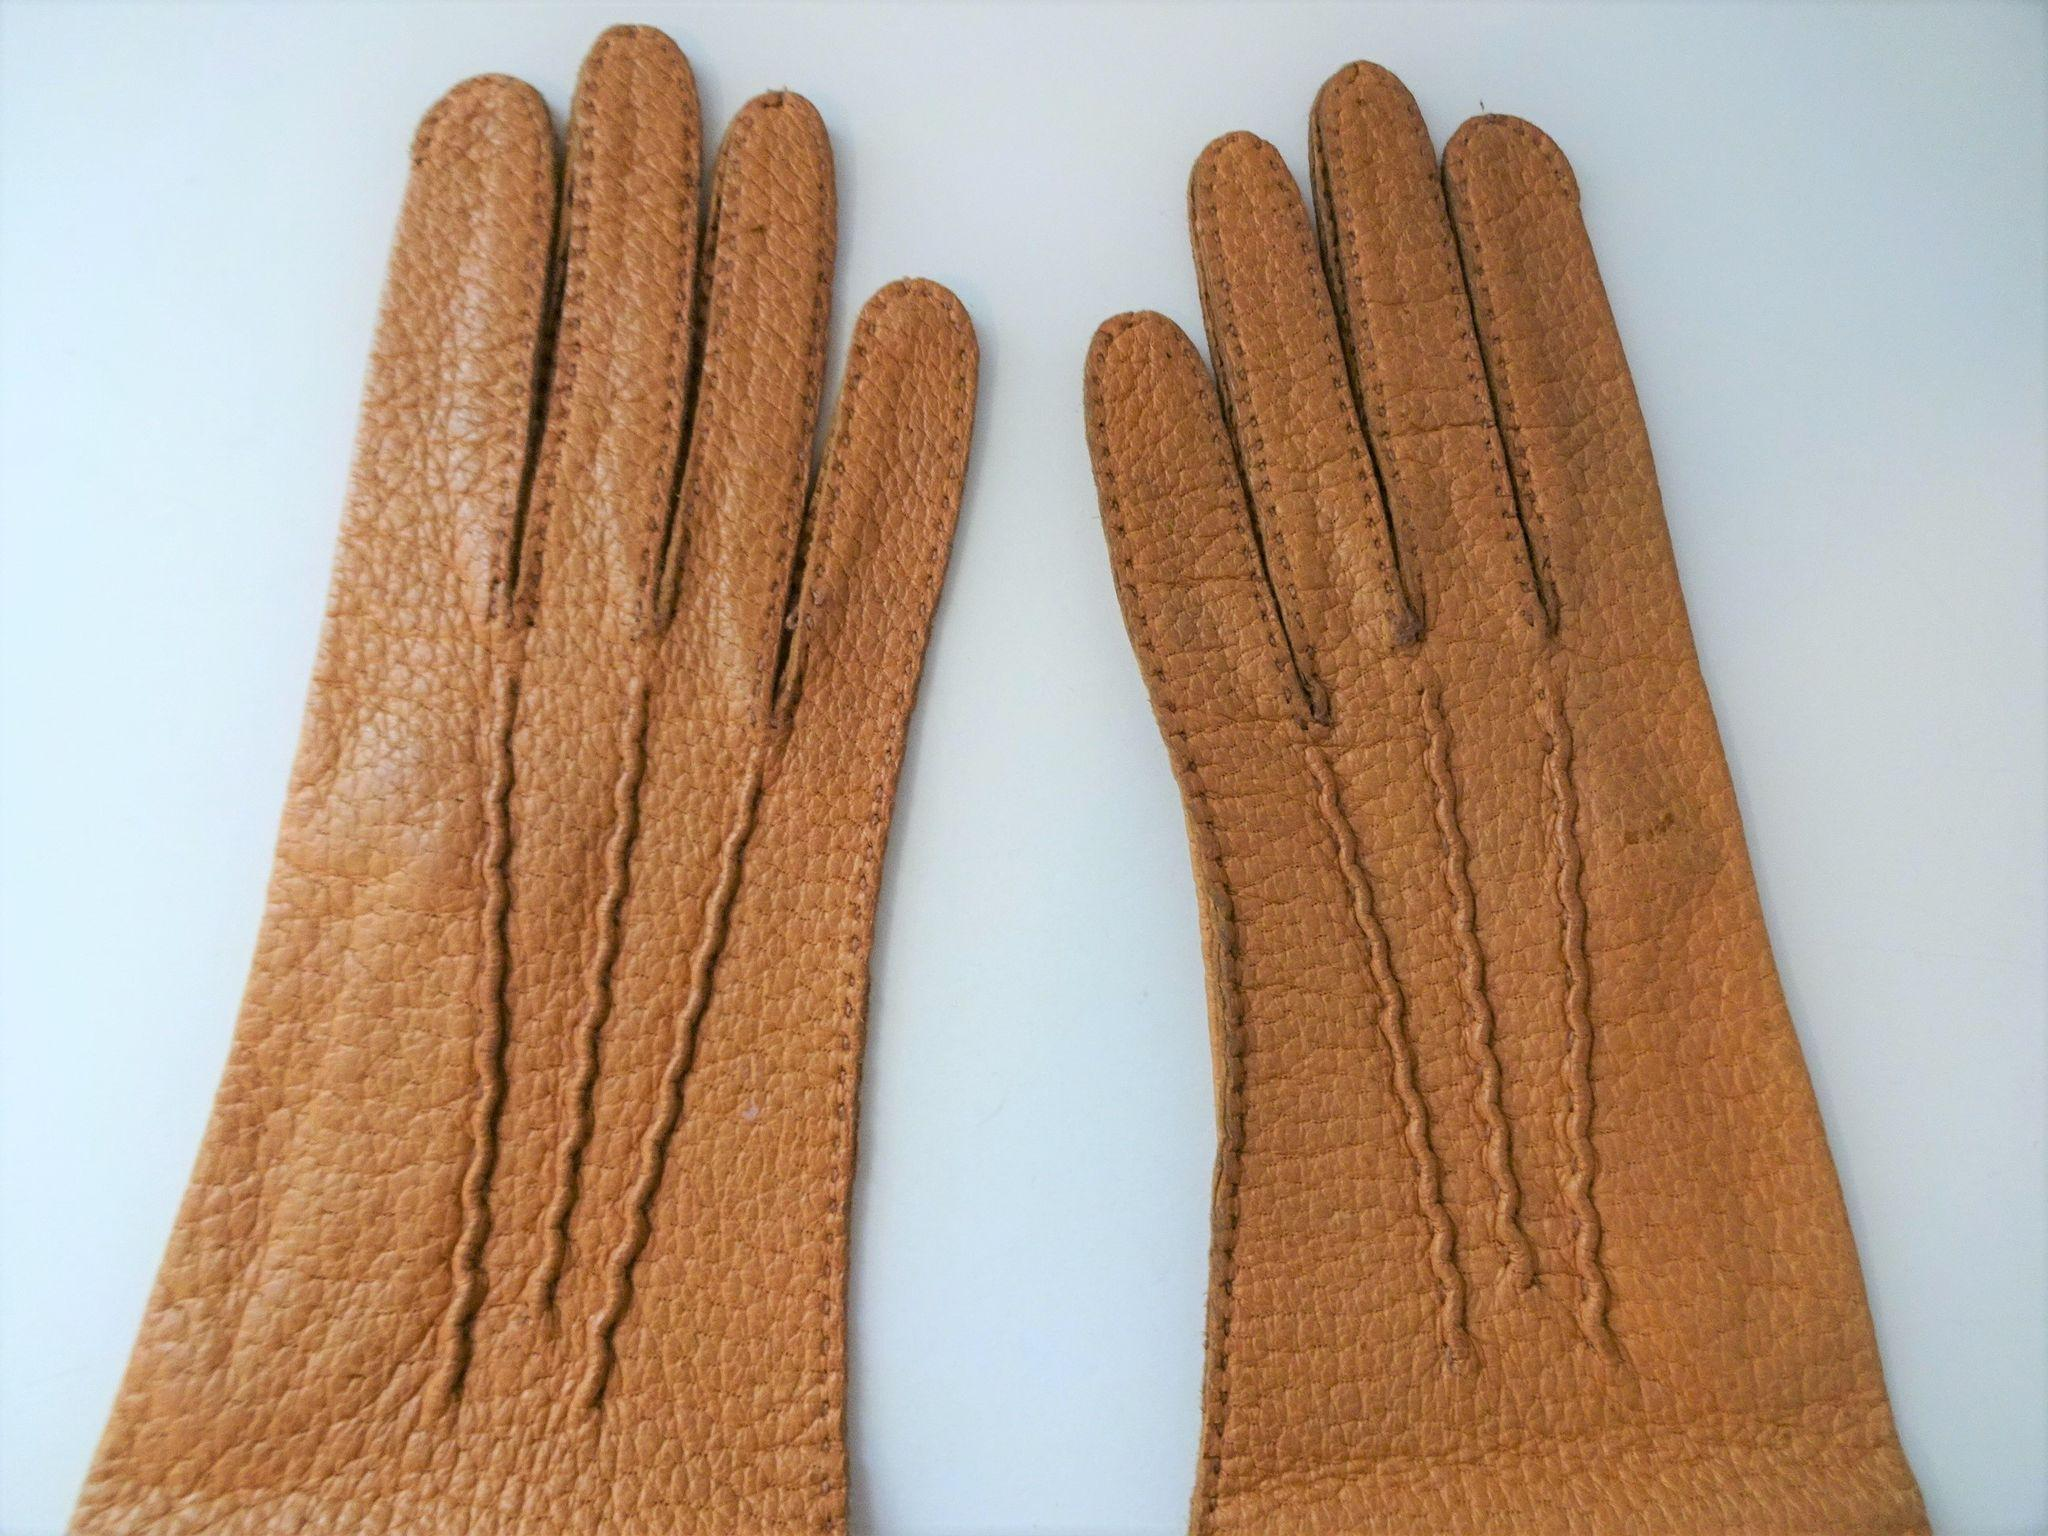 Vintage ladies leather opera gloves - Roll Over Large Image To Magnify Click Large Image To Zoom